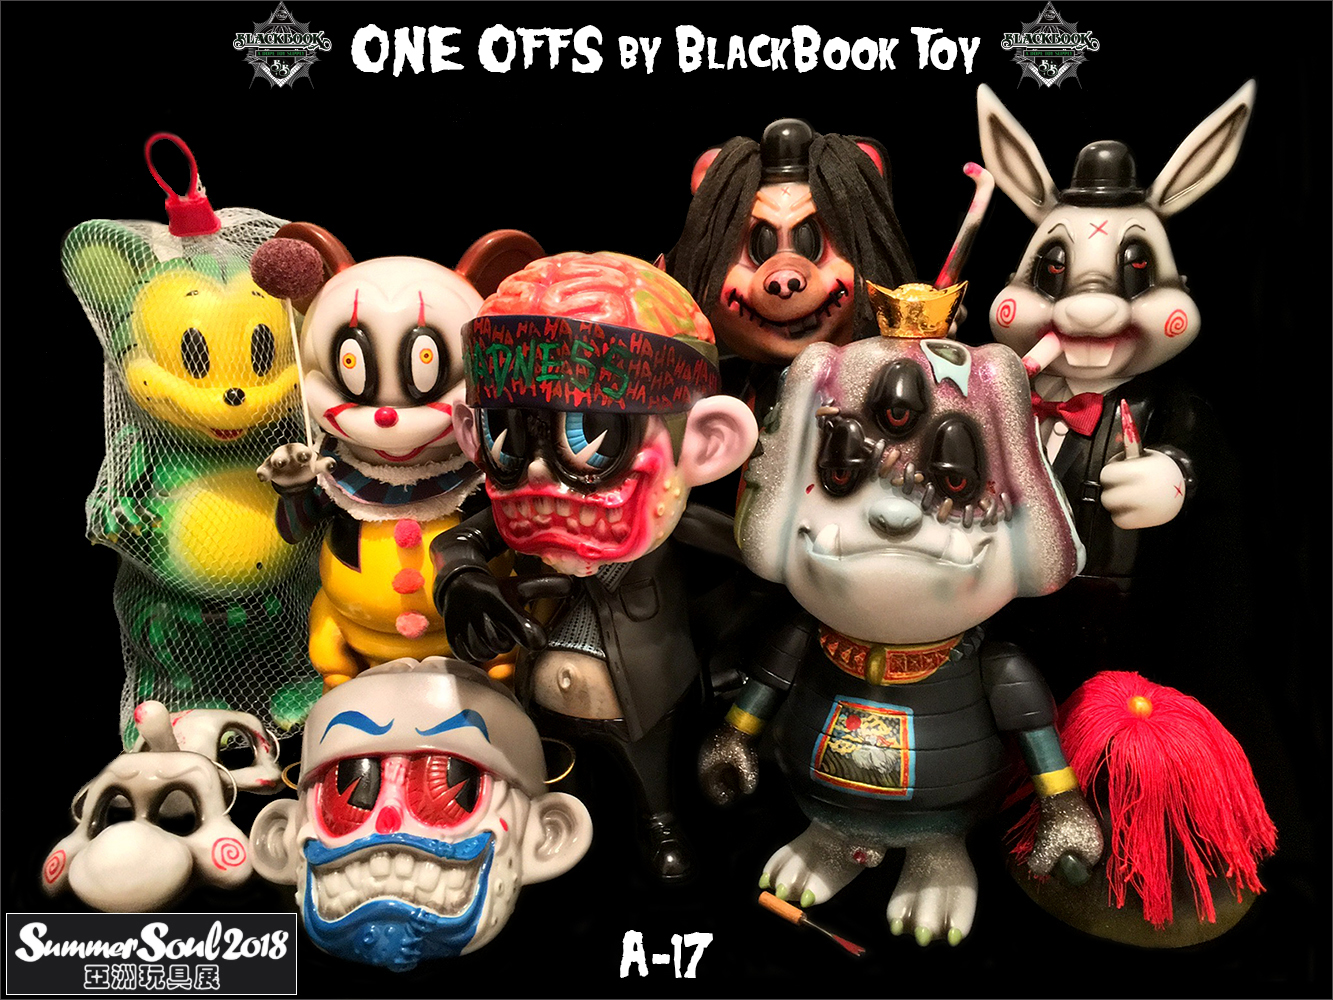 One Offs by BlackBook Toy for Summer Soul